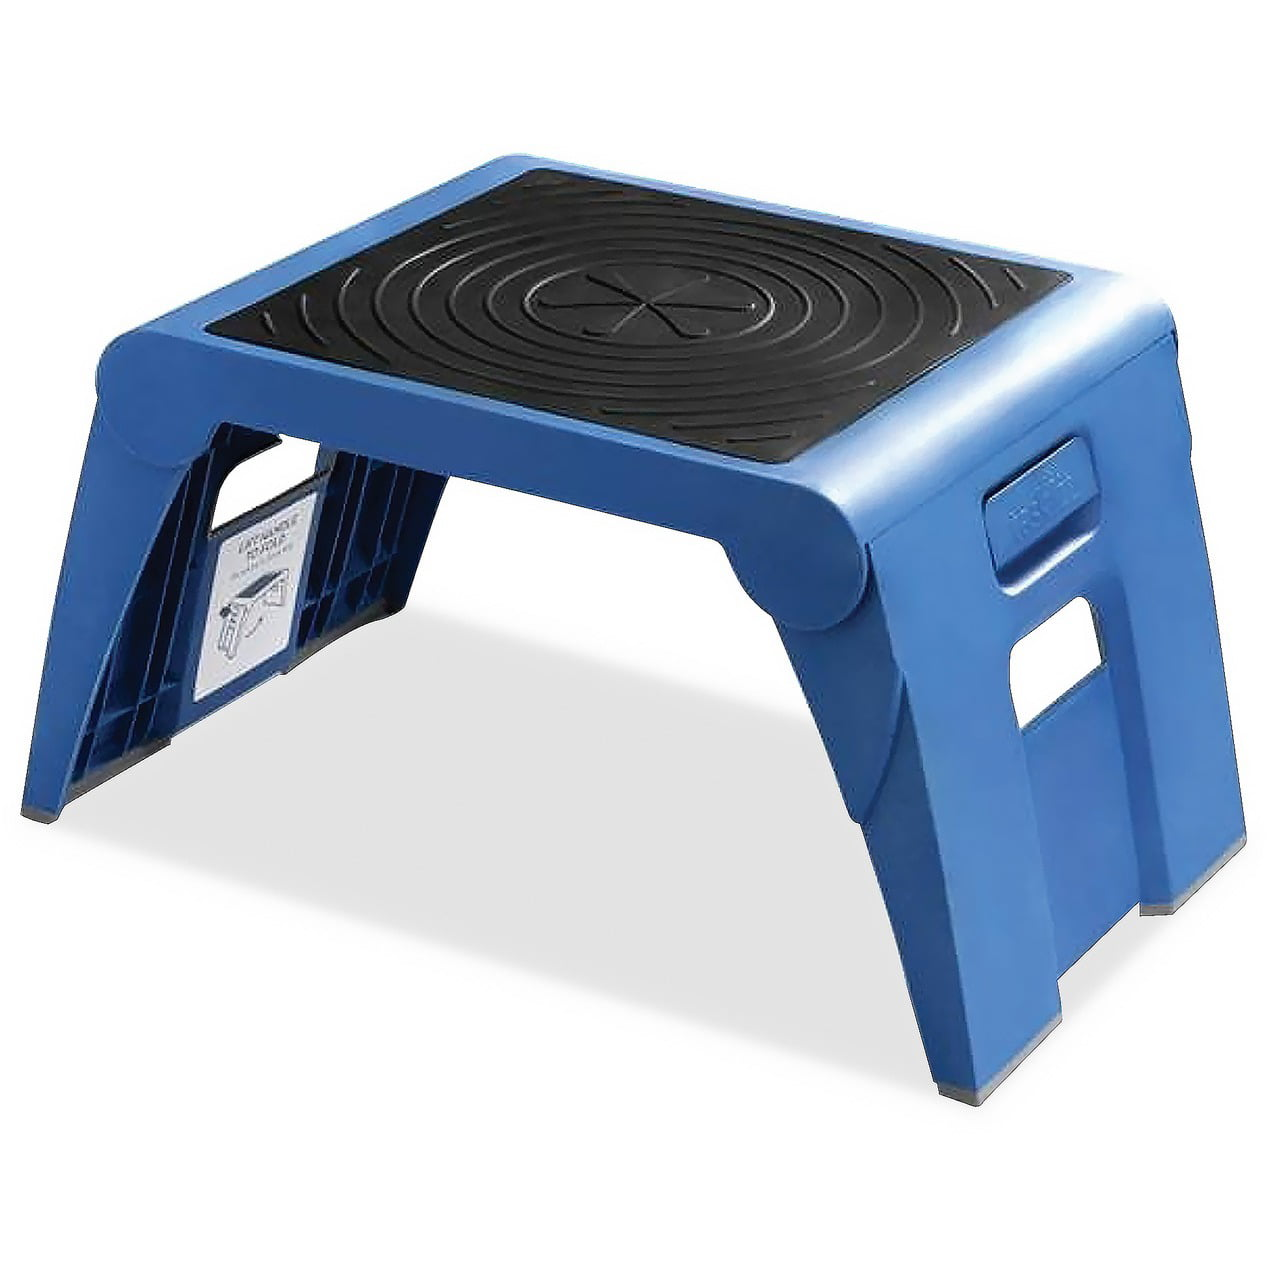 Cramer Folding Step Stool 300lb Cap 14w x 11 1/4d x 9 3/4h Blue - Walmart.com  sc 1 st  Walmart : folding step up stool - islam-shia.org